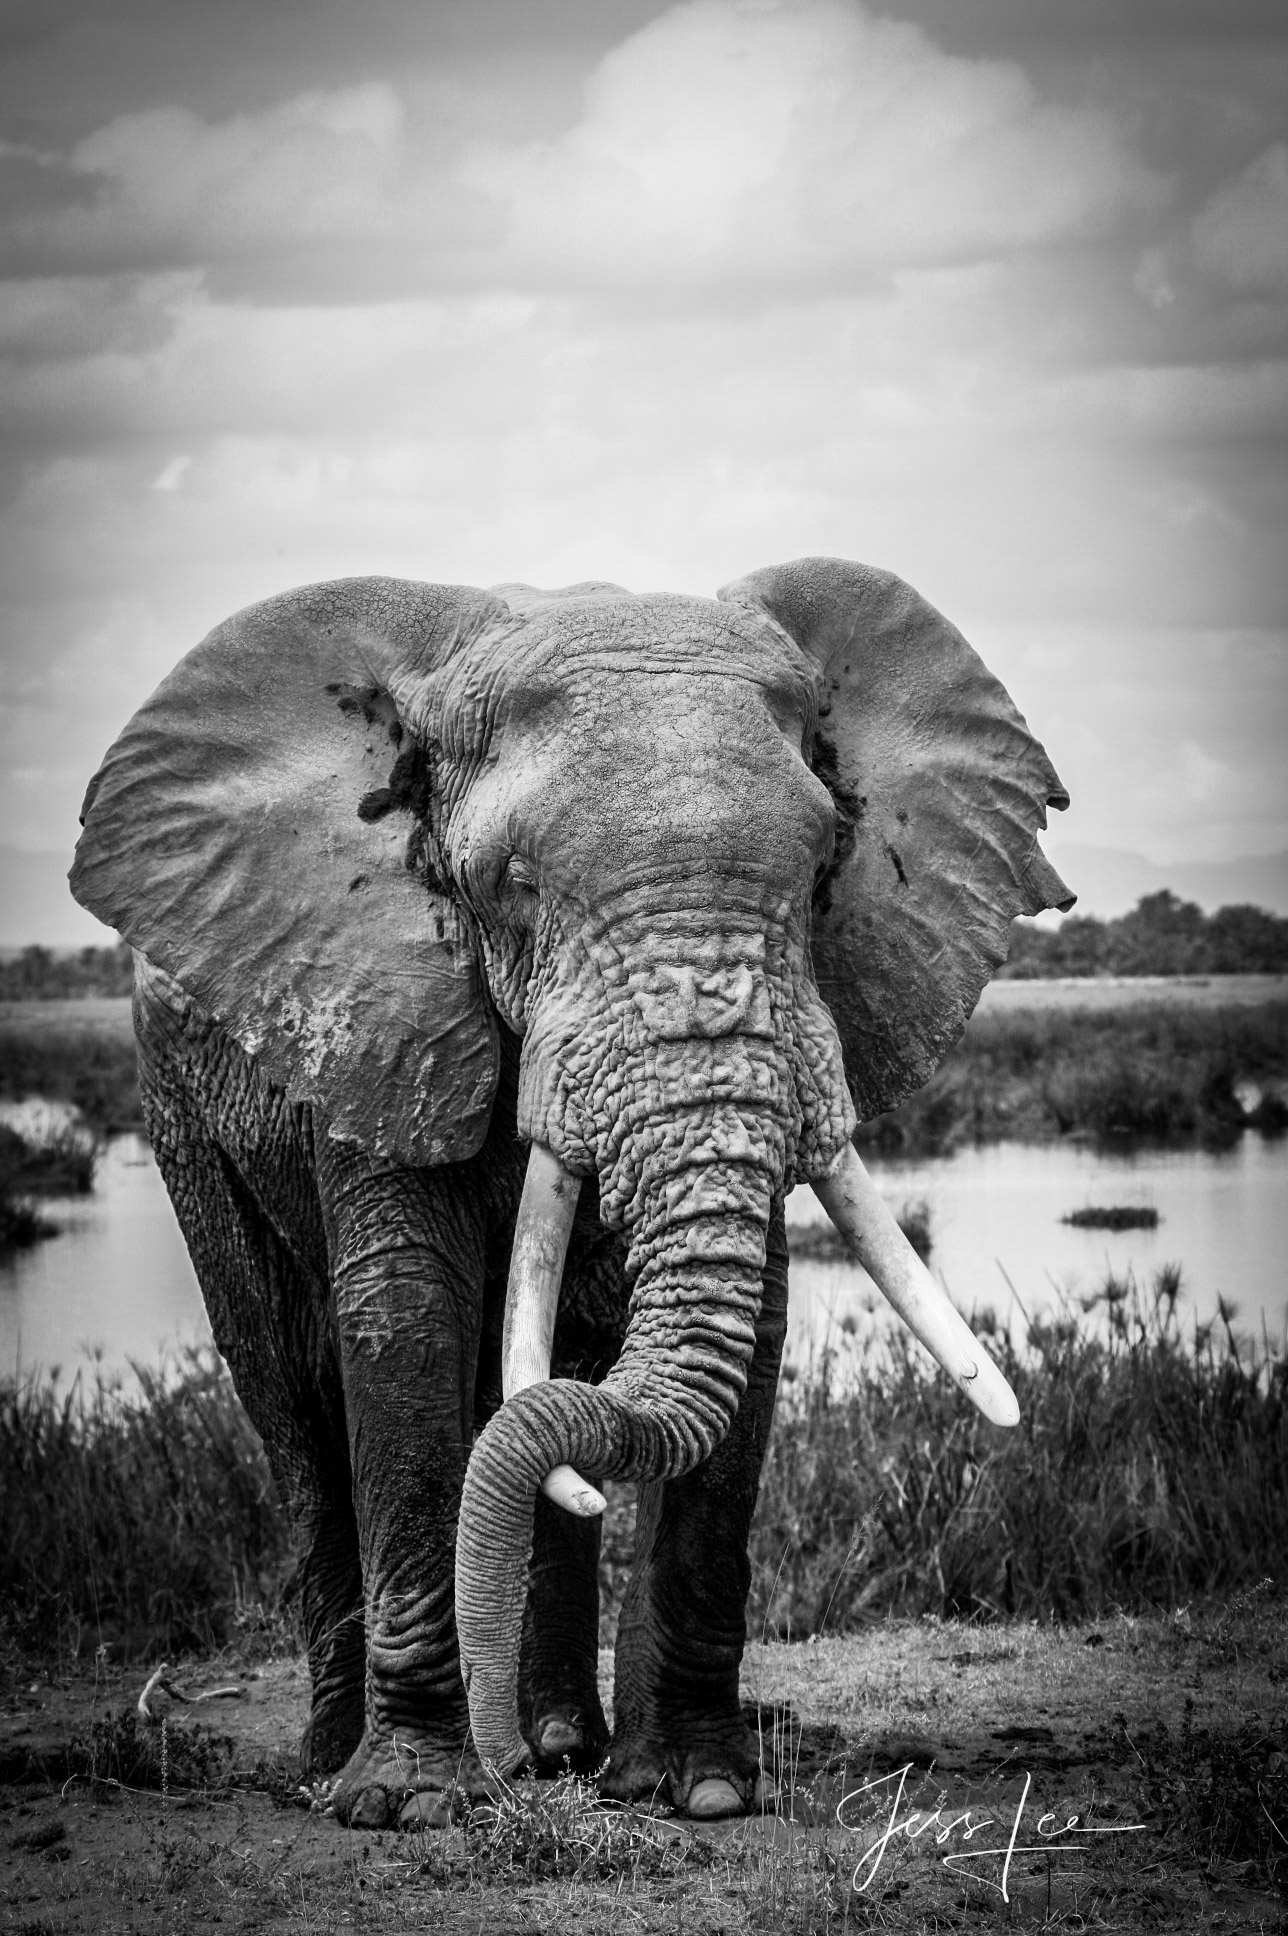 African, elephant, Elephantidae, elephant, black and white, wildlife, , photo